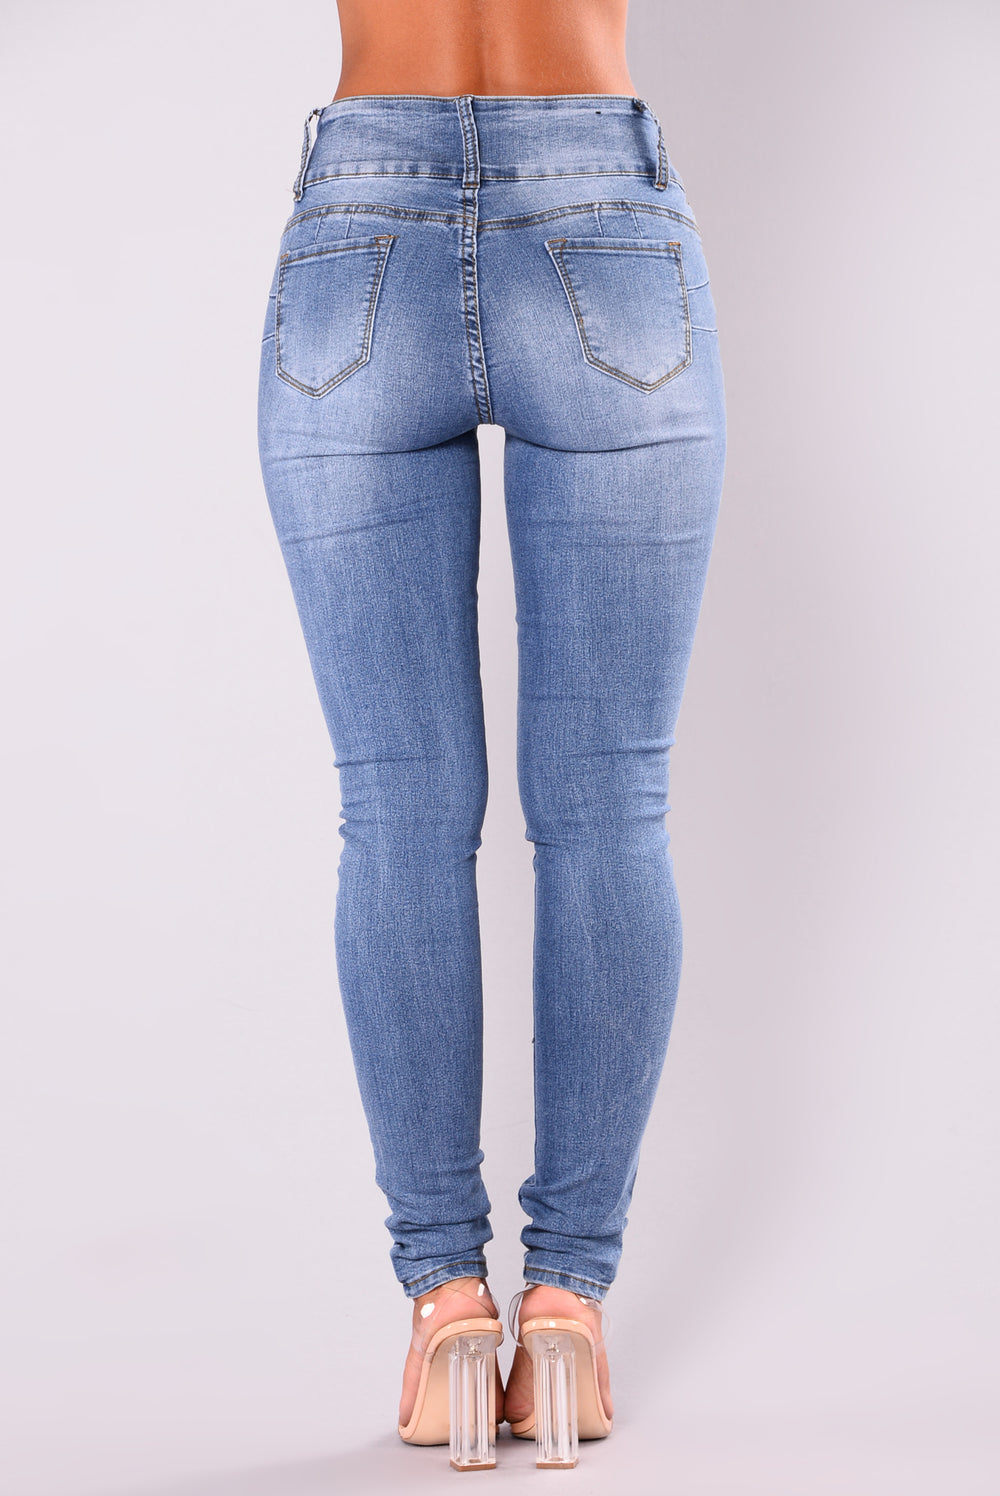 Rockin Every Where Booty Sculpting Jeans - Medium Blue Wash